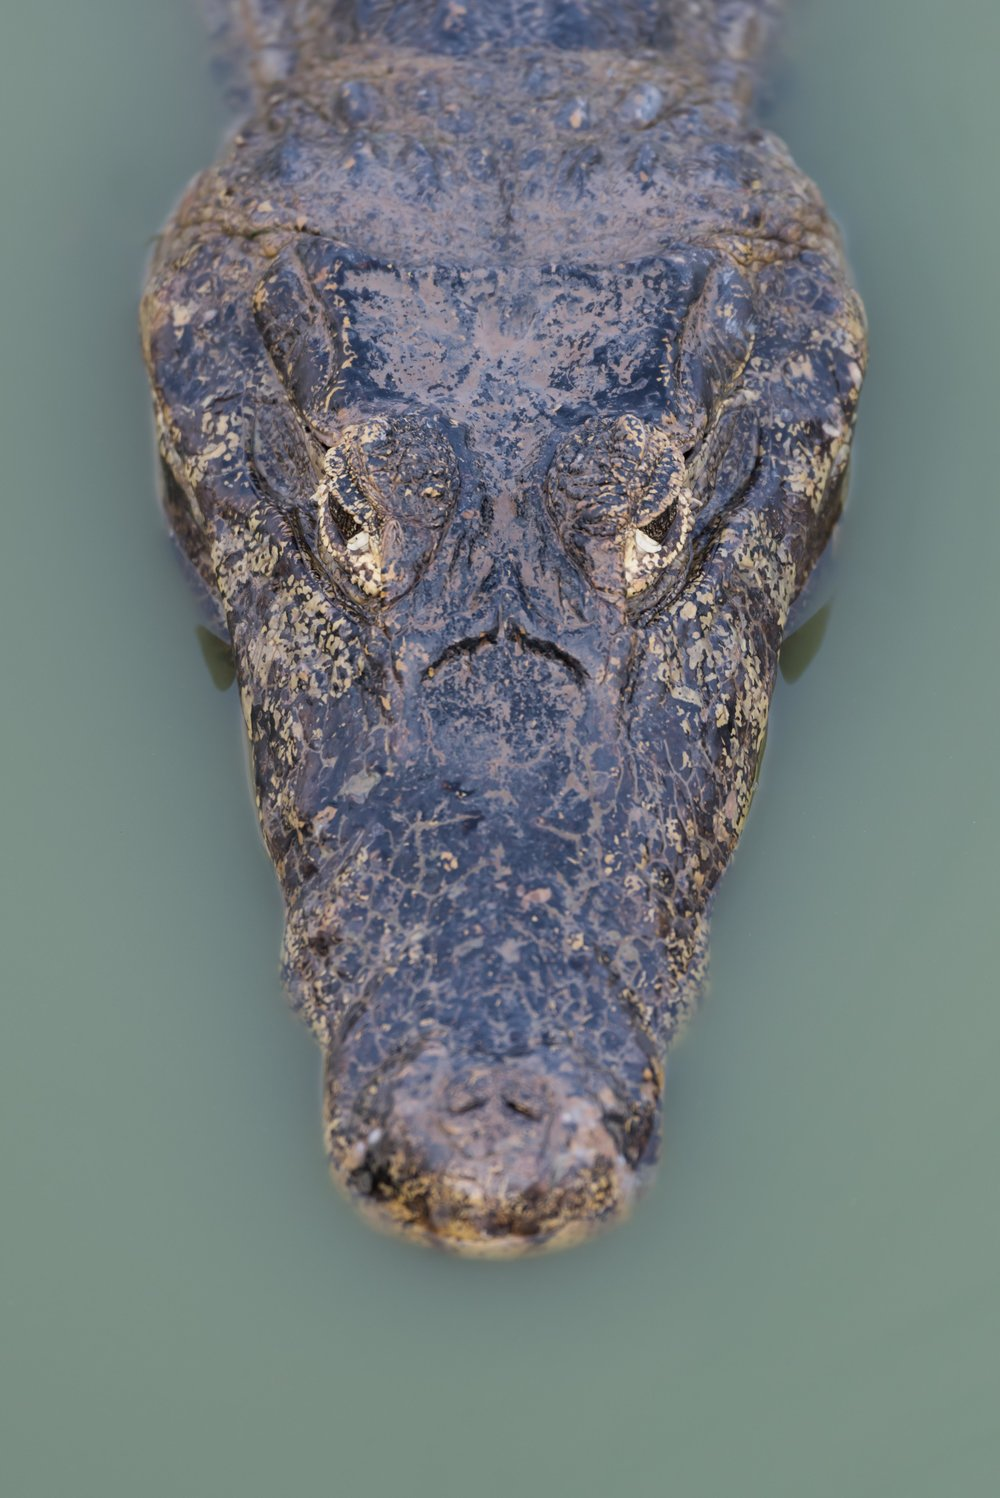 Close-up of yacare caiman head in pool